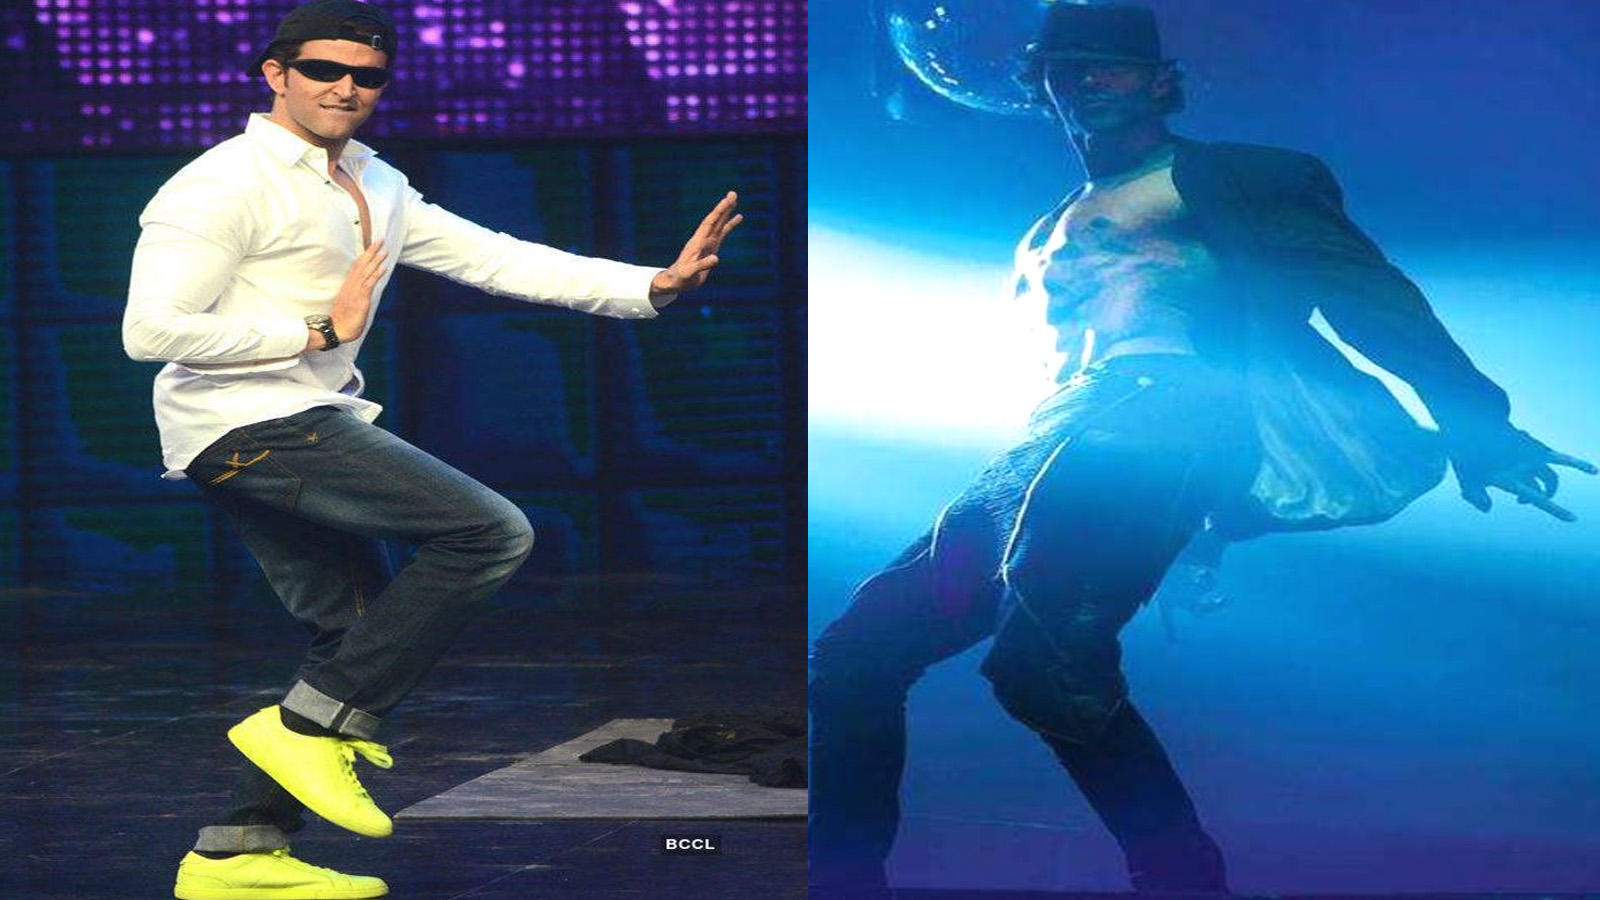 Hrithik Roshan: Doctor once told me I won't be able to dance in my life